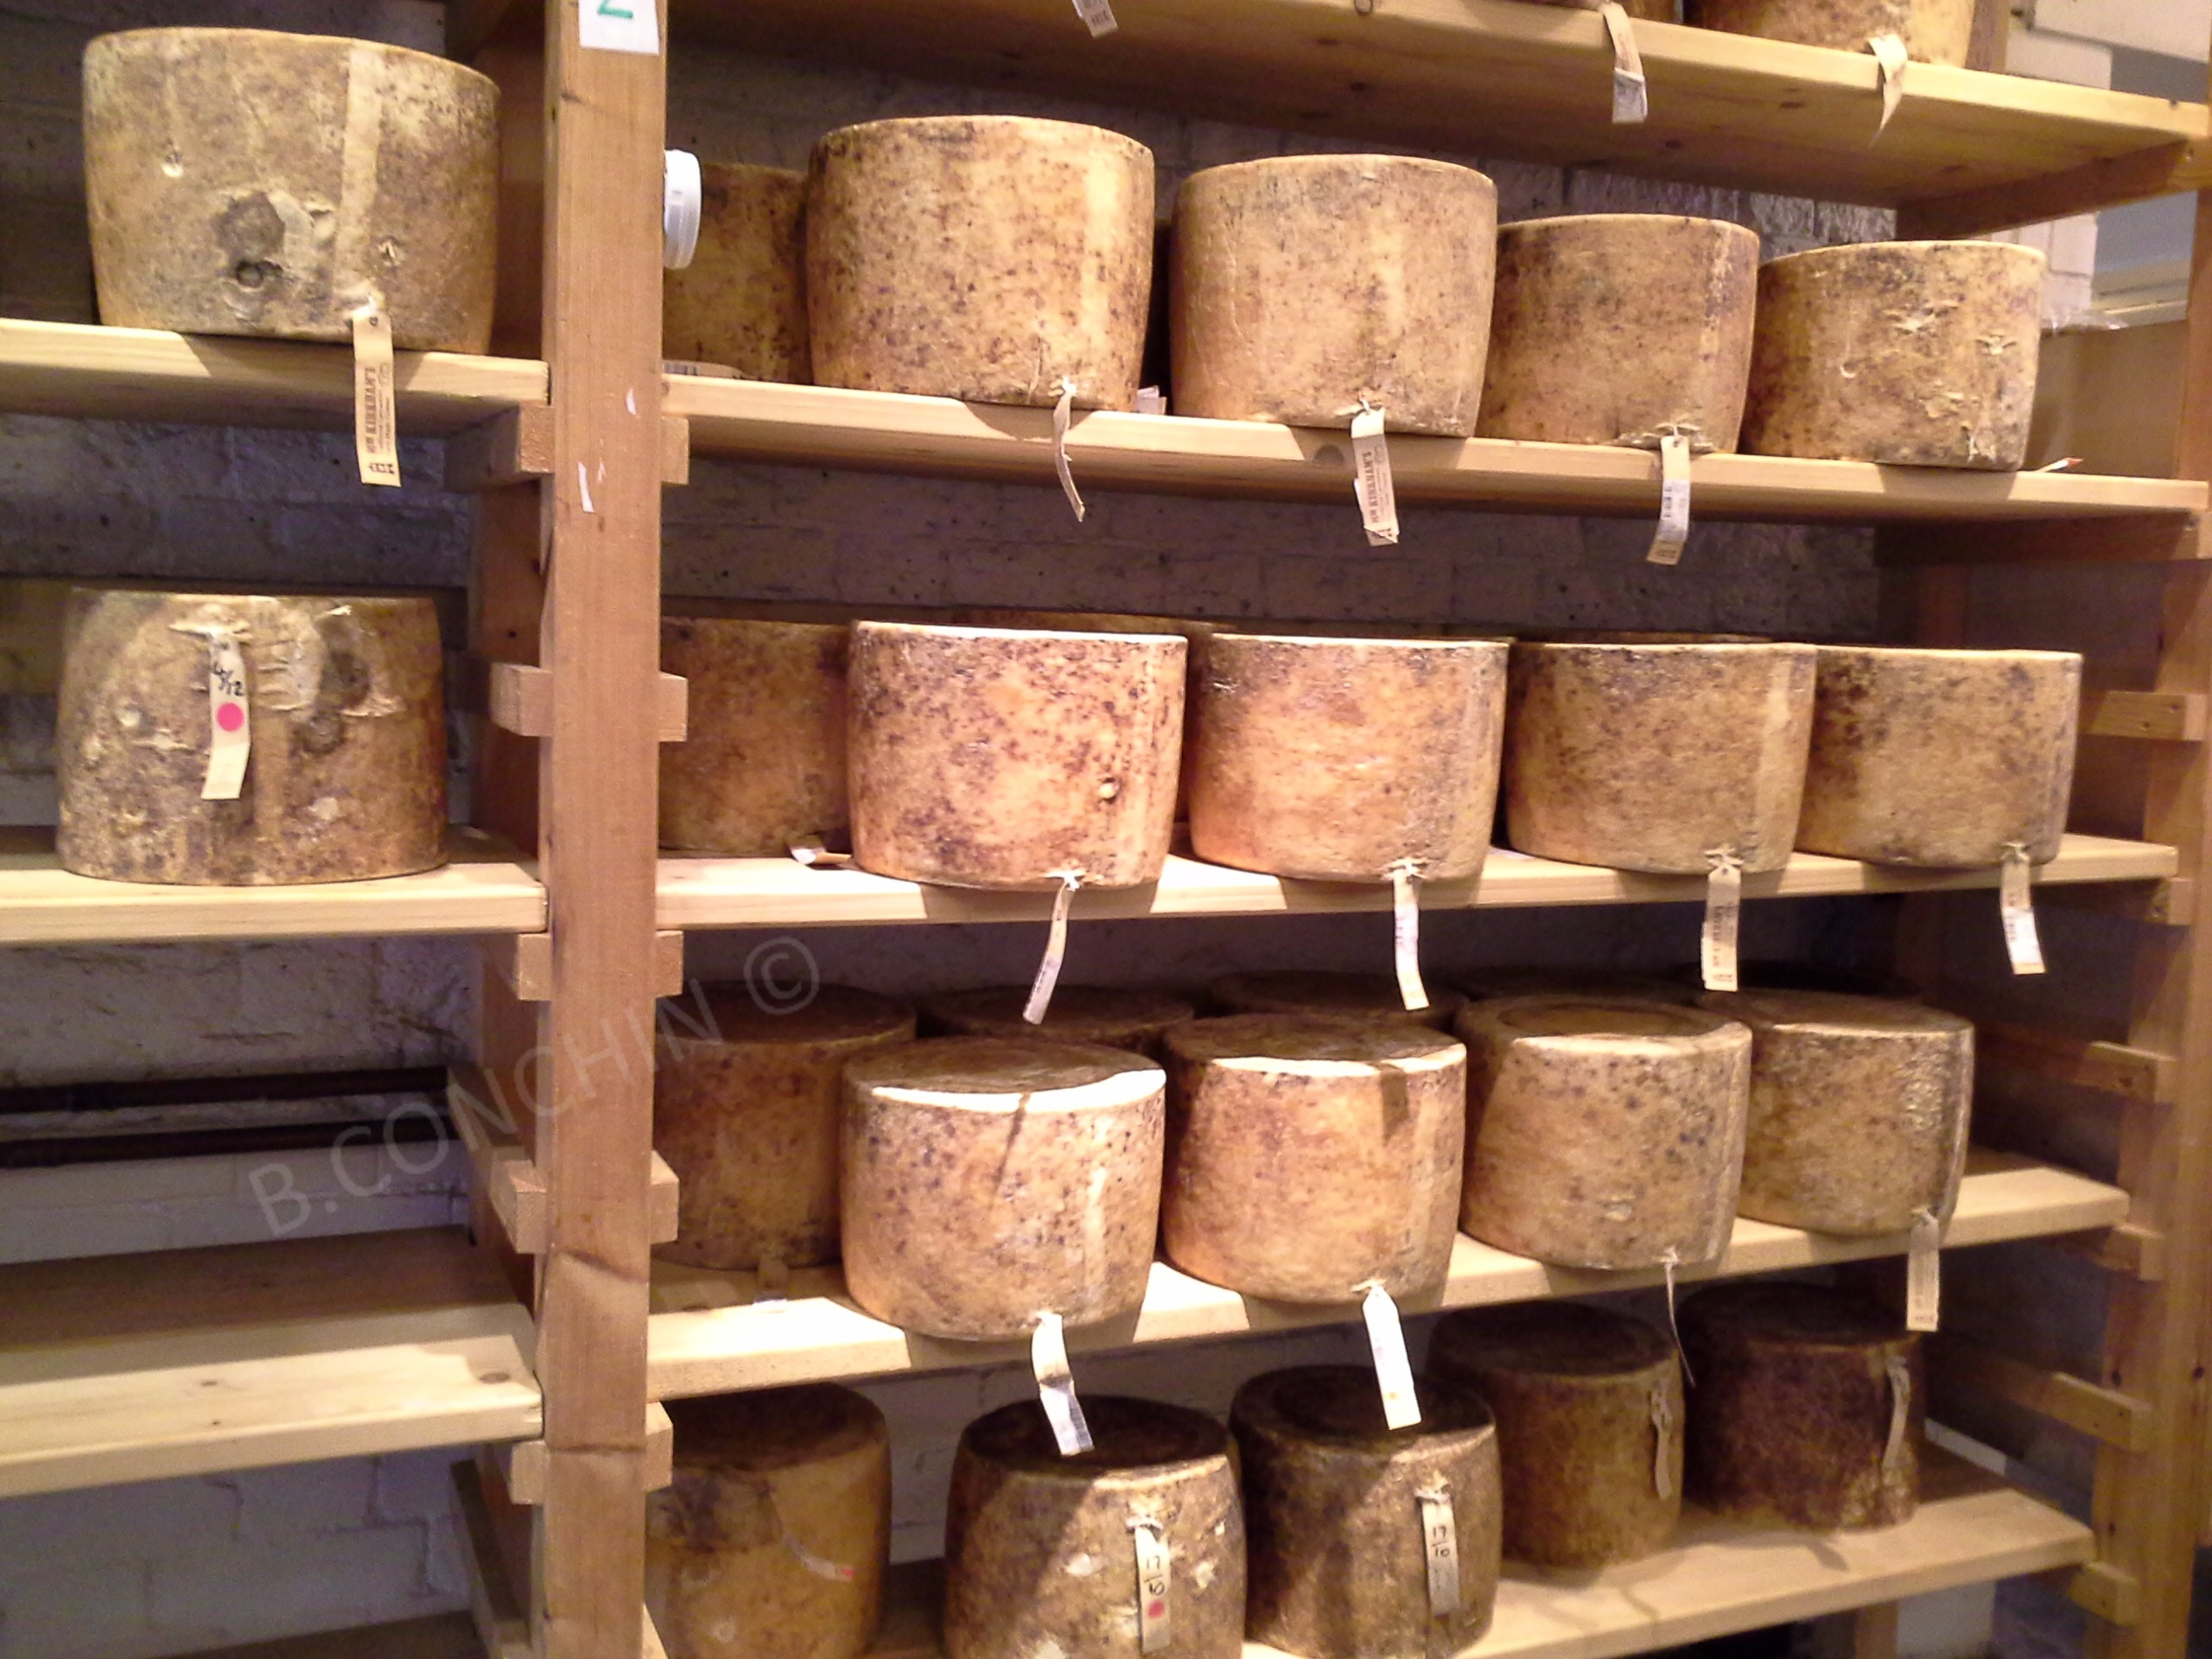 Cheddar en maturation, Londres